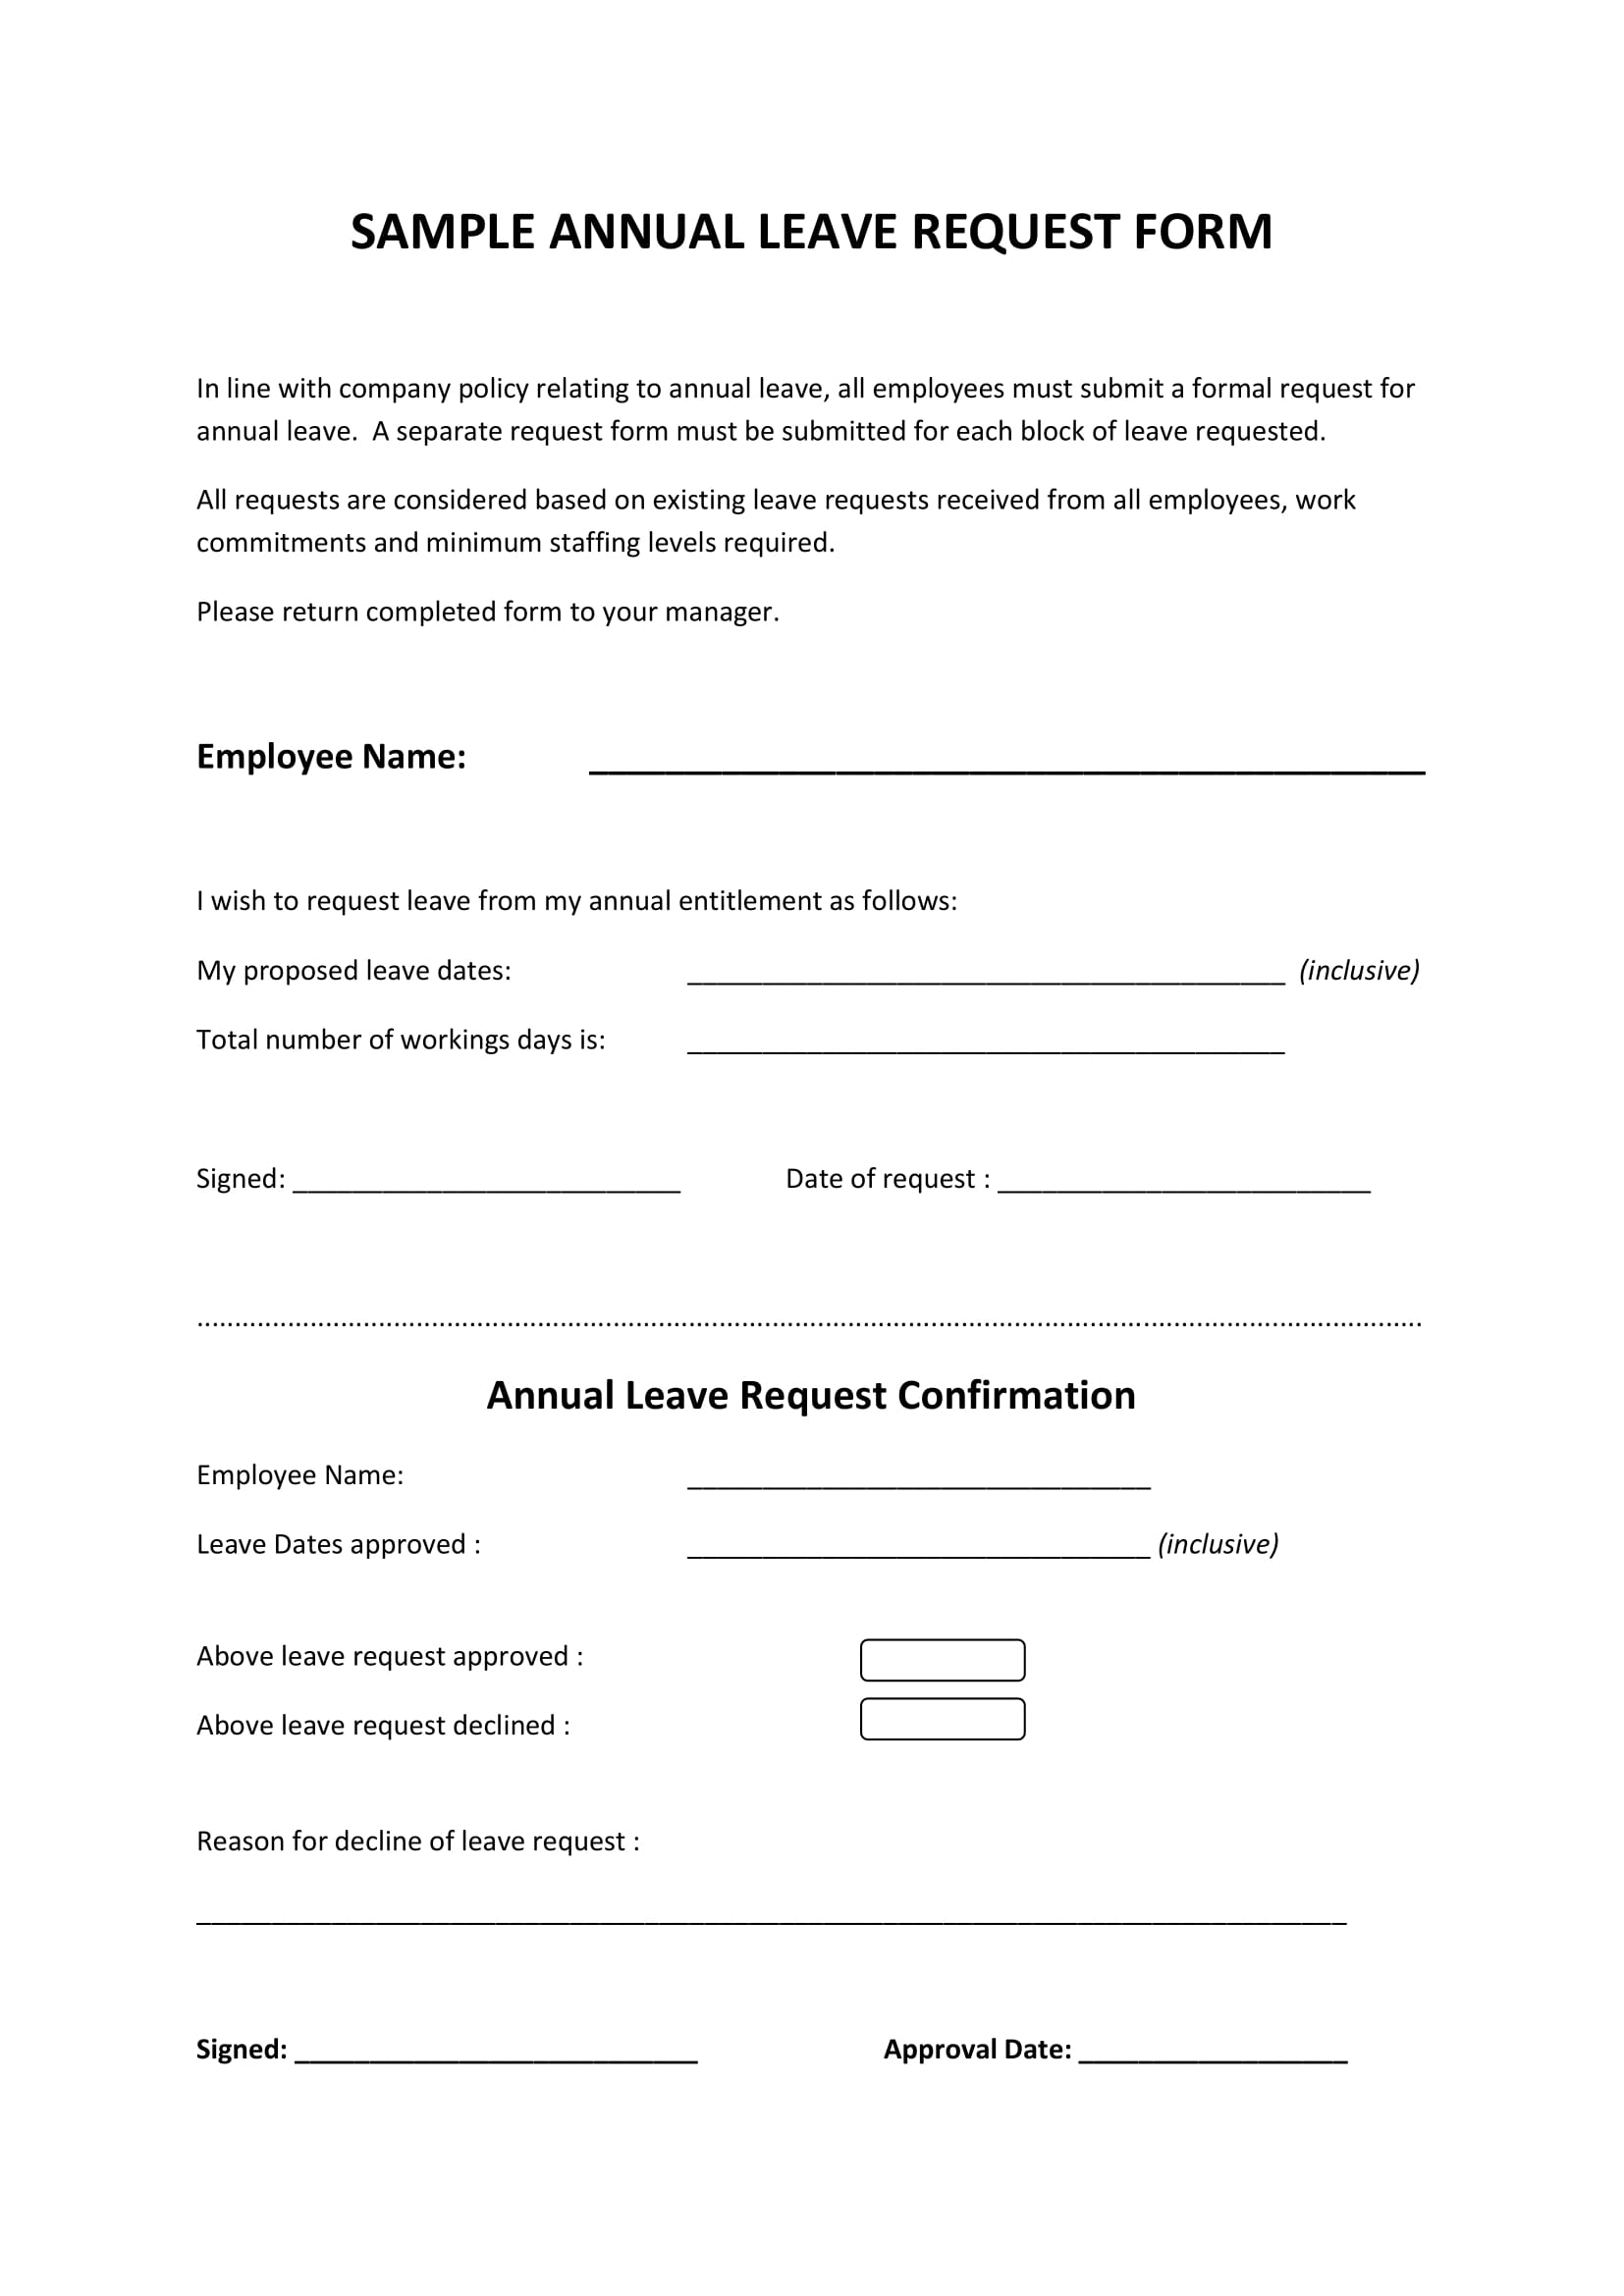 9 leave request form examples pdf annual leave request form example altavistaventures Choice Image